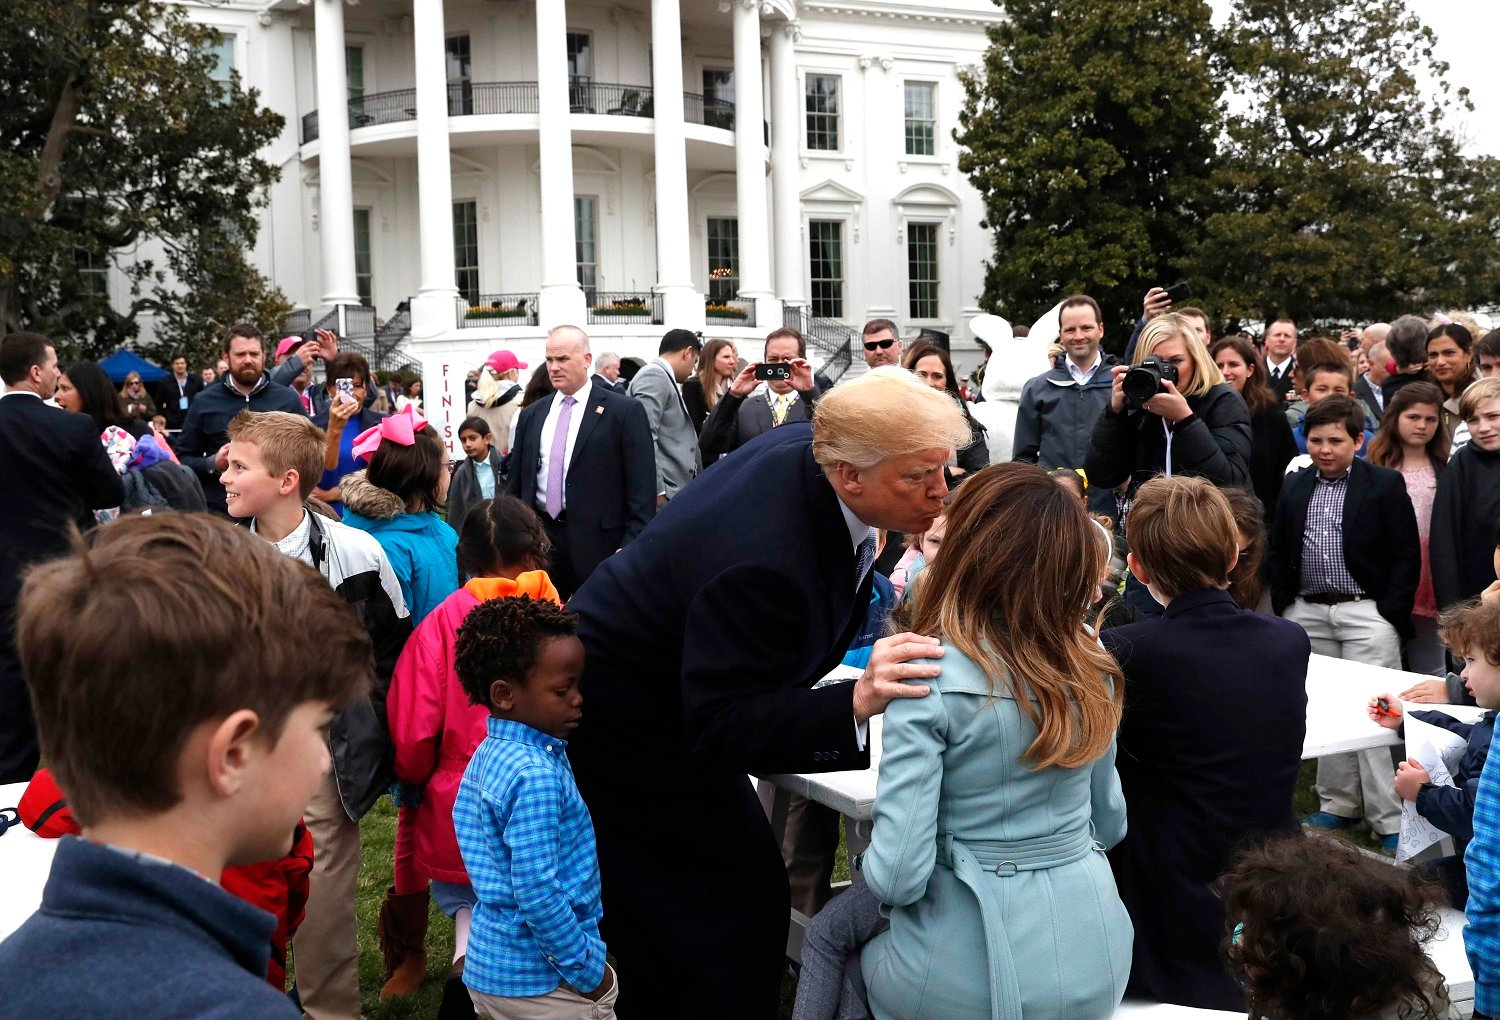 U.S. President Donald Trump kisses first lady Melania Trump among children gathered for the annual White House Easter Egg Roll on the South Lawn of the White House in Washington, U.S., April 2, 2018. REUTERS/Leah Millis